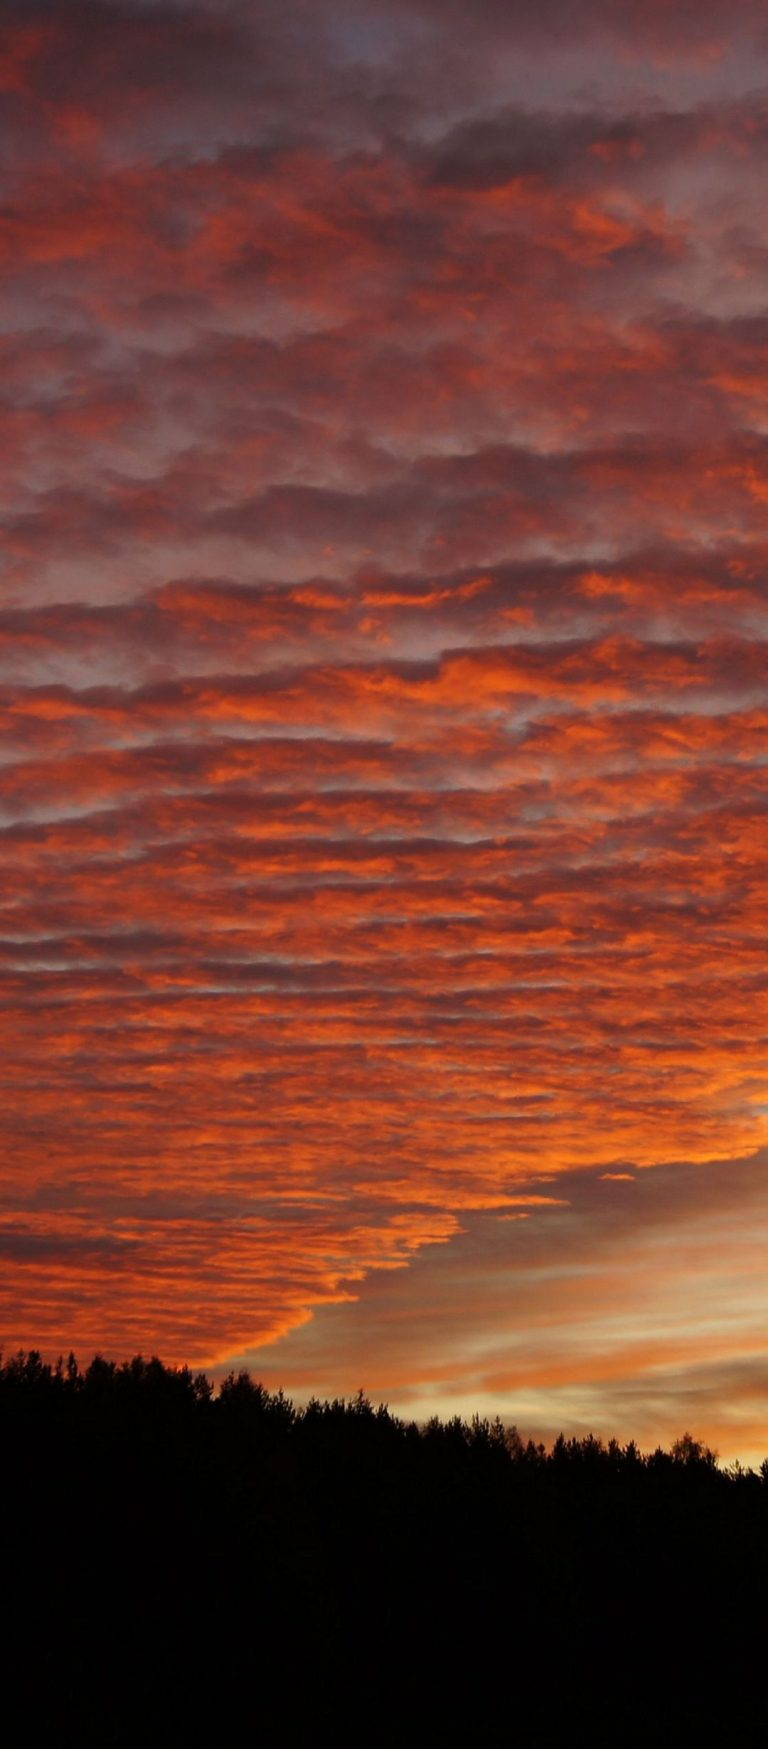 Sky Clouds Sunset Beautiful 1080x2460 768x1749